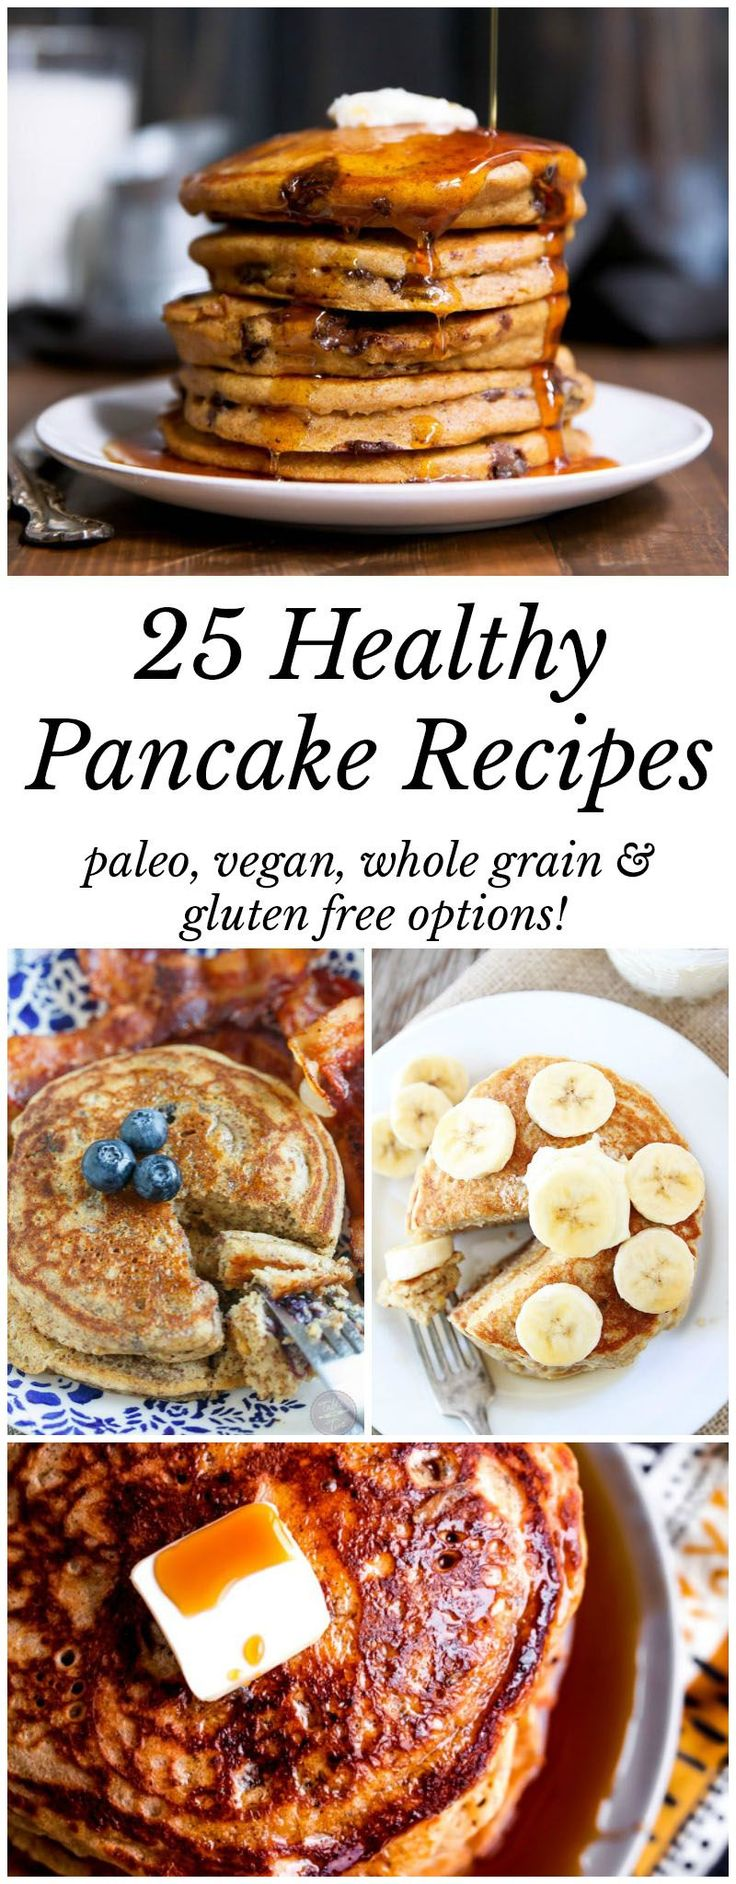 25 Amazing healthy pancake recipes worth waking up for! Paleo, vegan, whole grain and gluten free options! Great for kids.